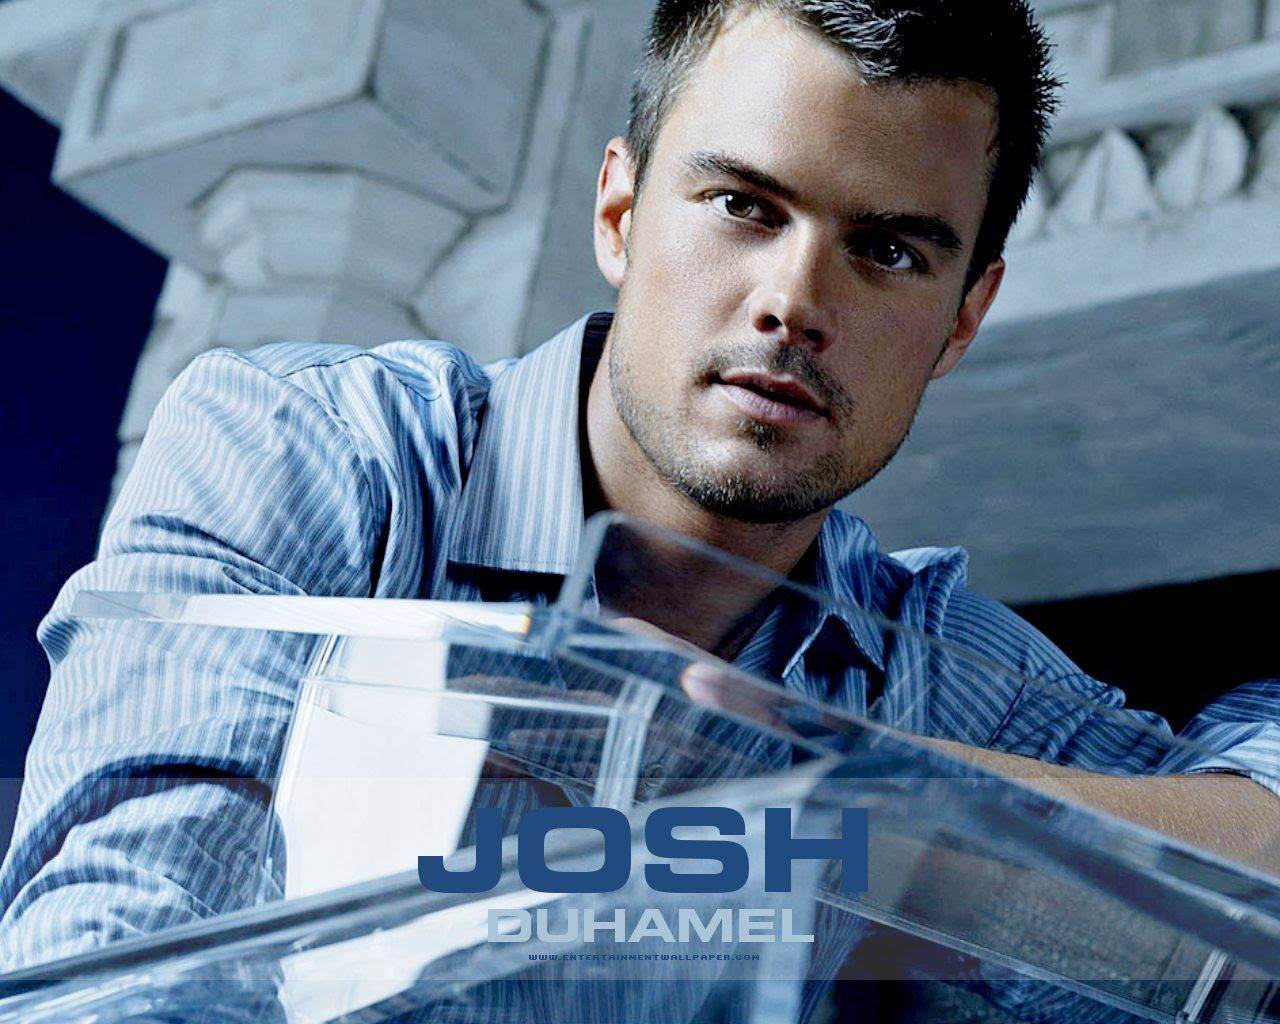 Josh Duhamel photo joshduh_mb.jpg